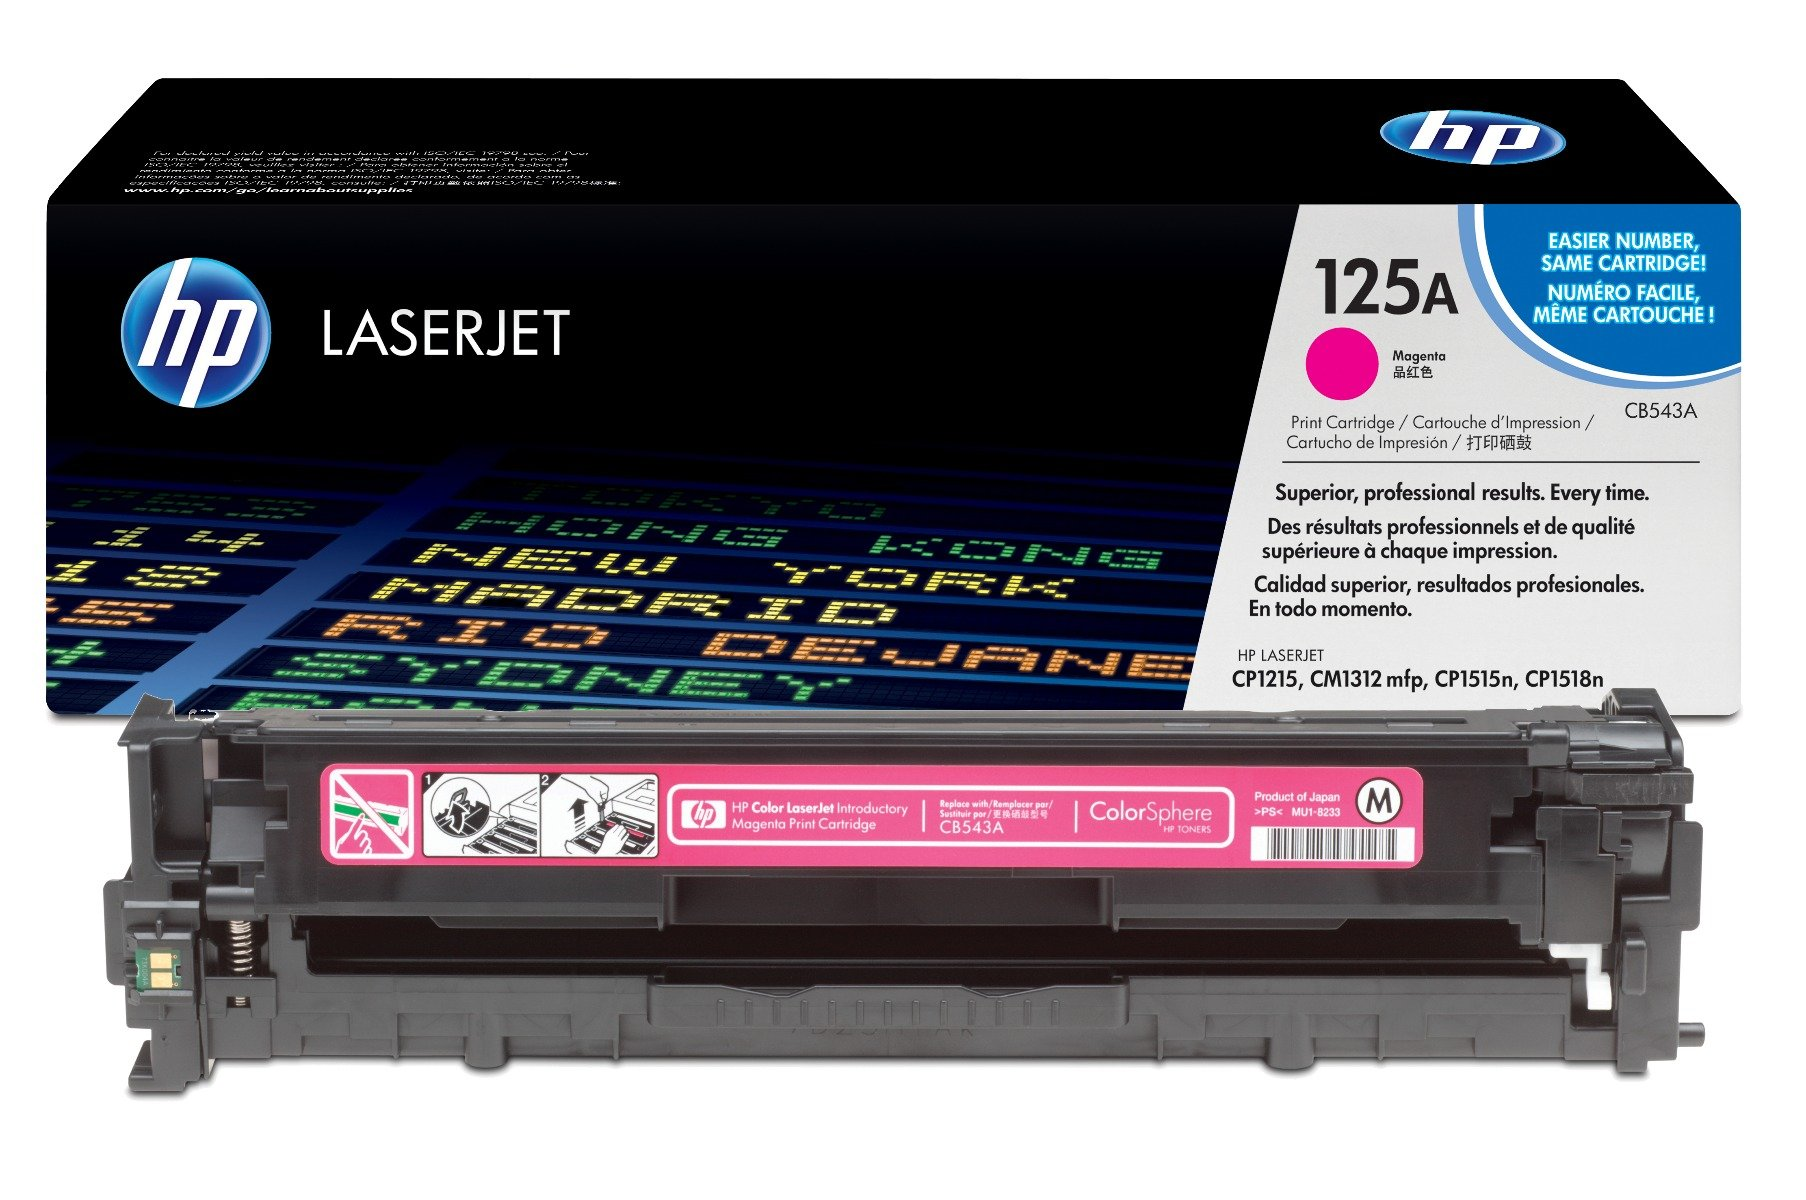 Genuine Magenta HP 125A Toner Cartridge - (CB543A)